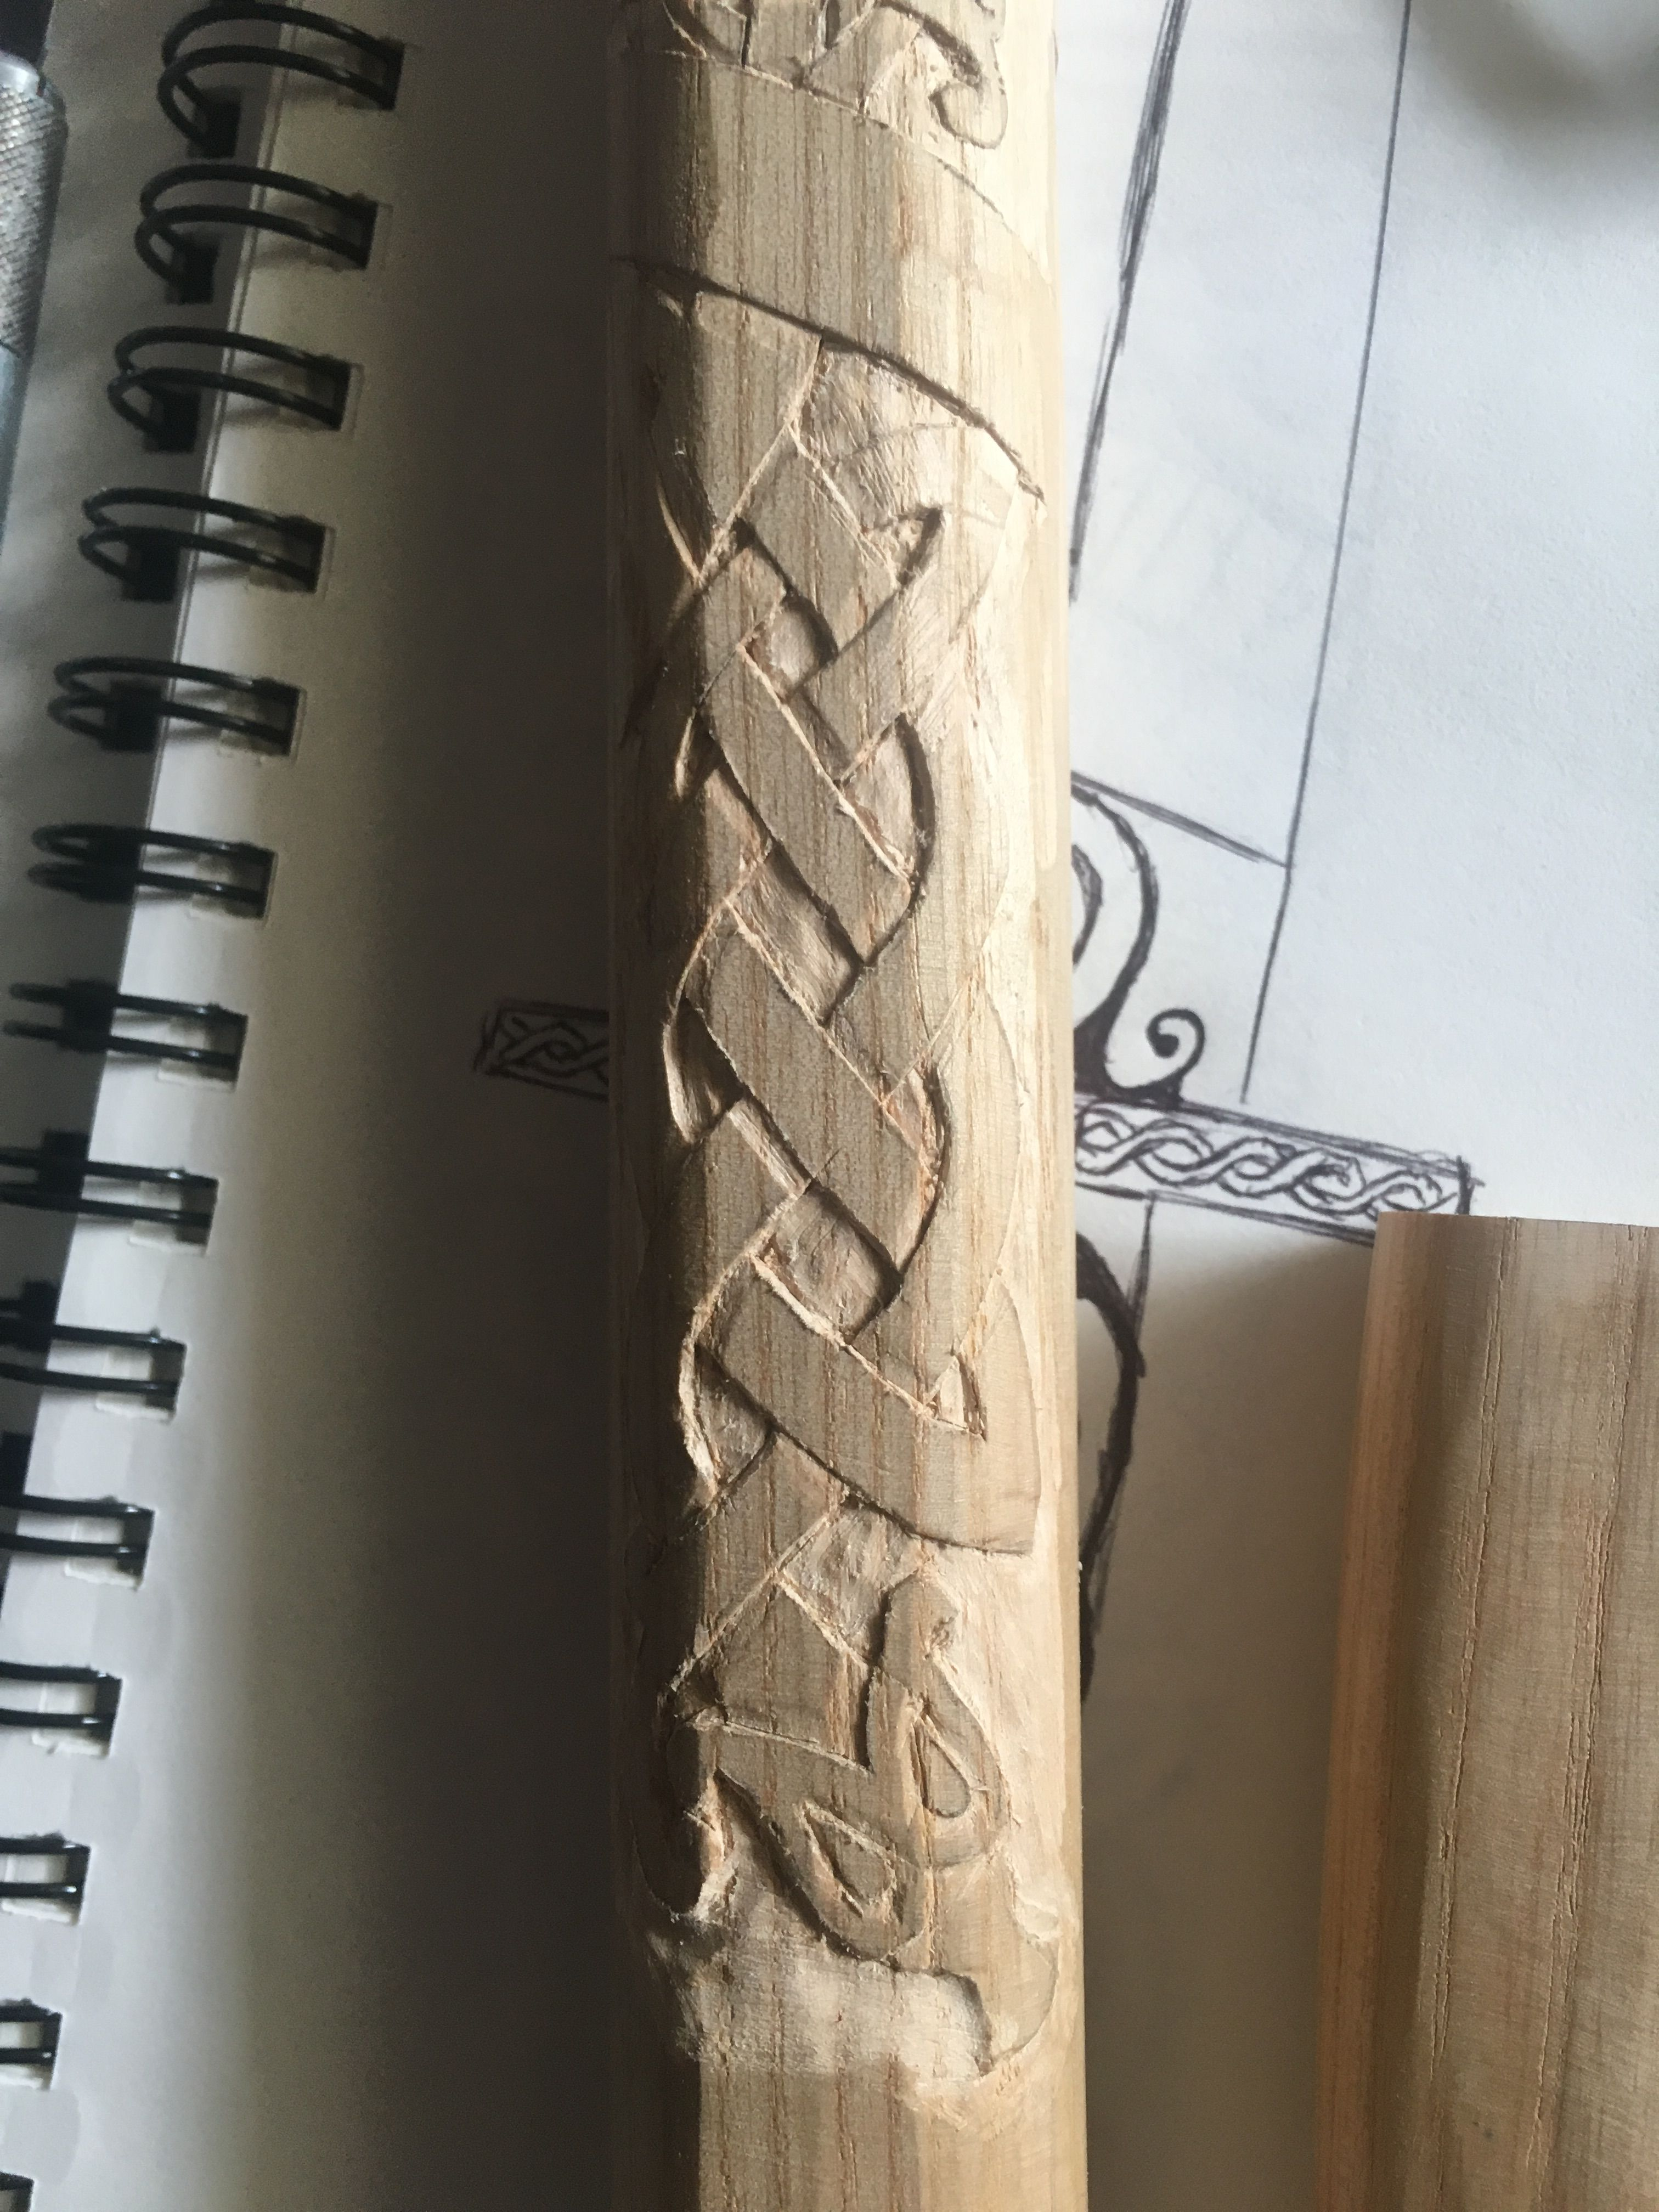 Carving an axe handle from Ash wood